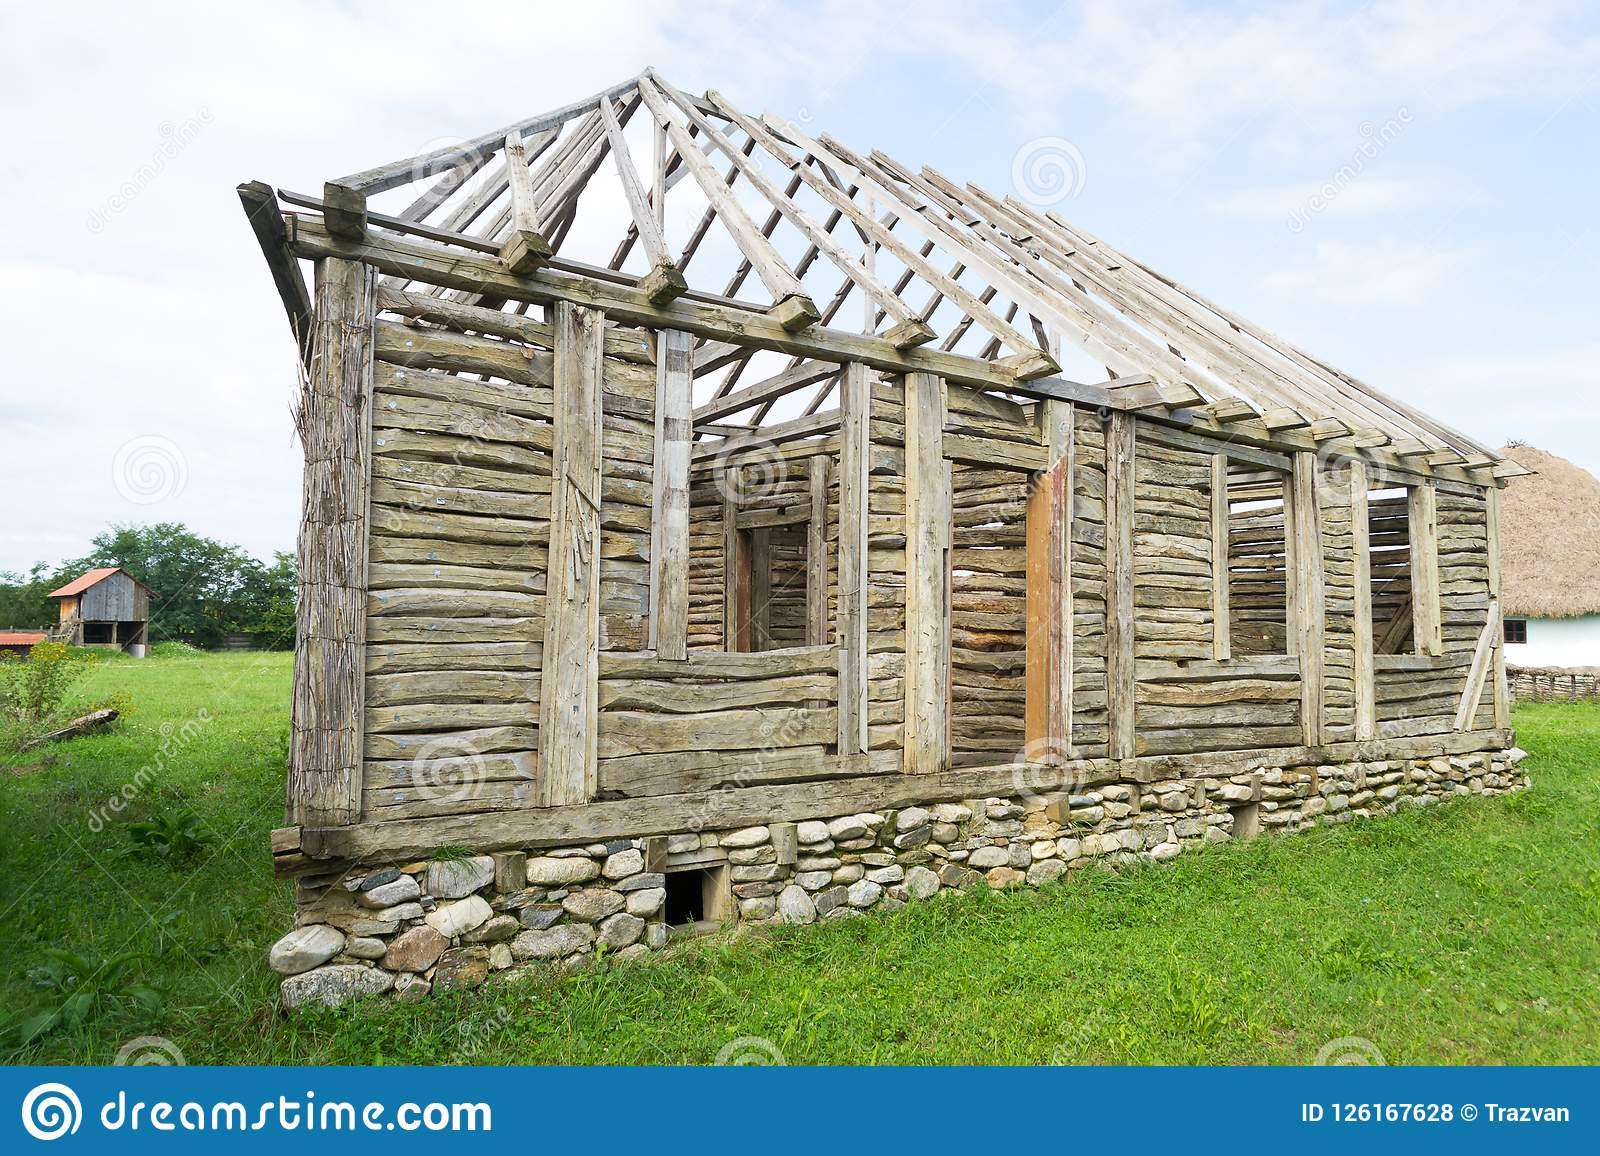 Romanian traditional wood house frame